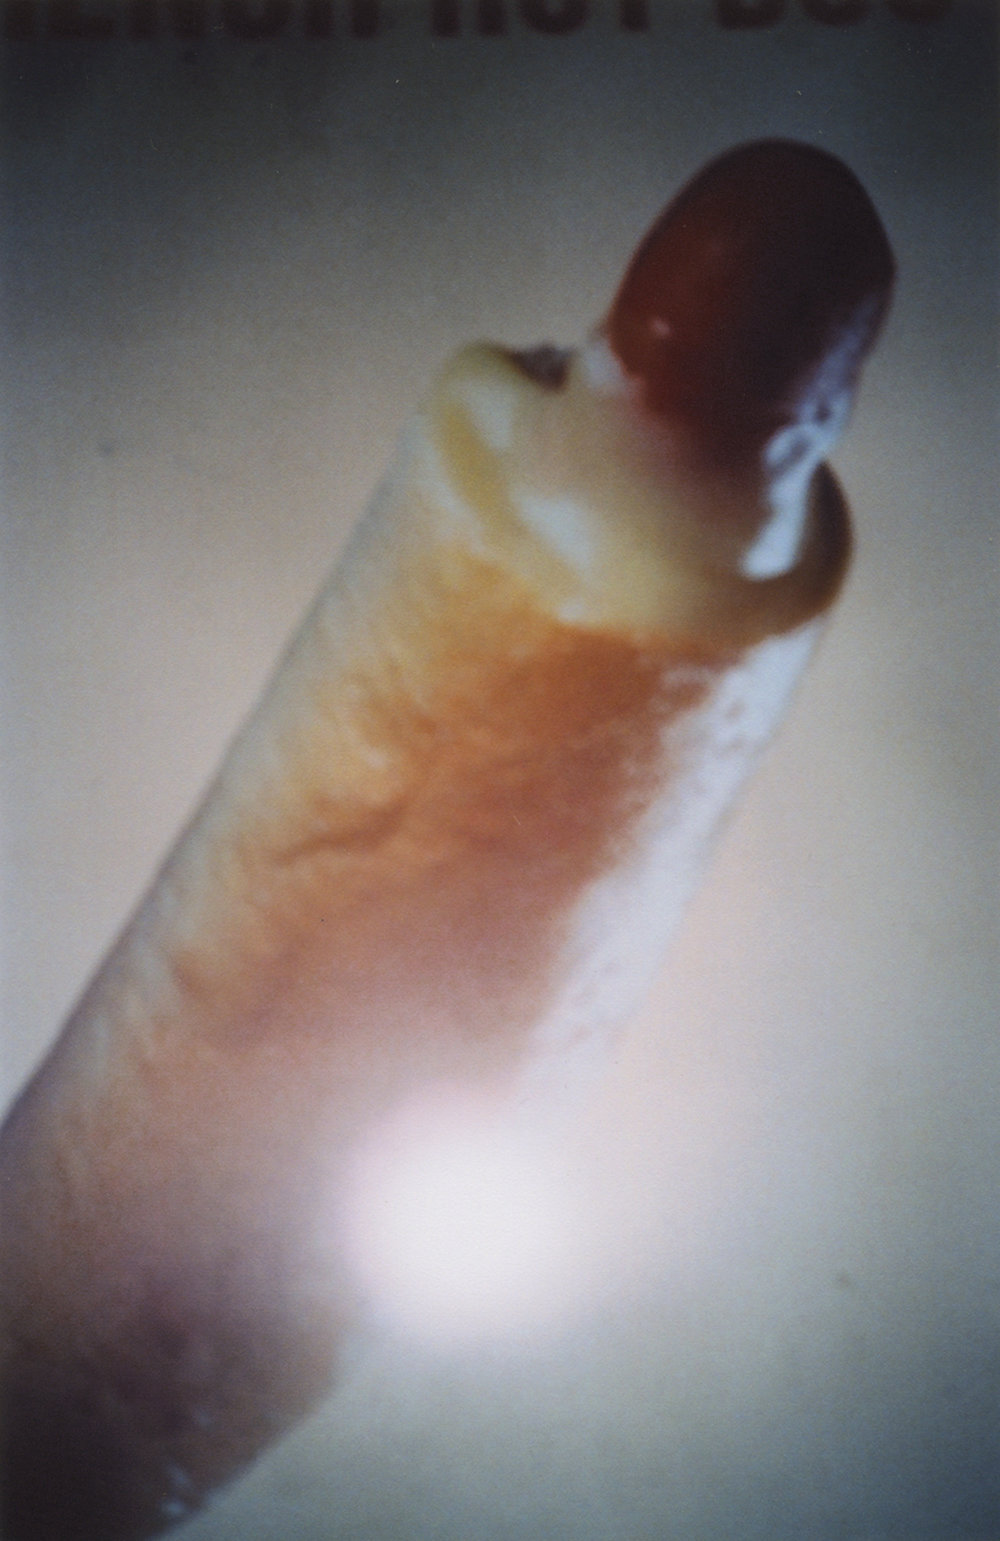 Disposable 15A (Lipstick), 2018, C-print.